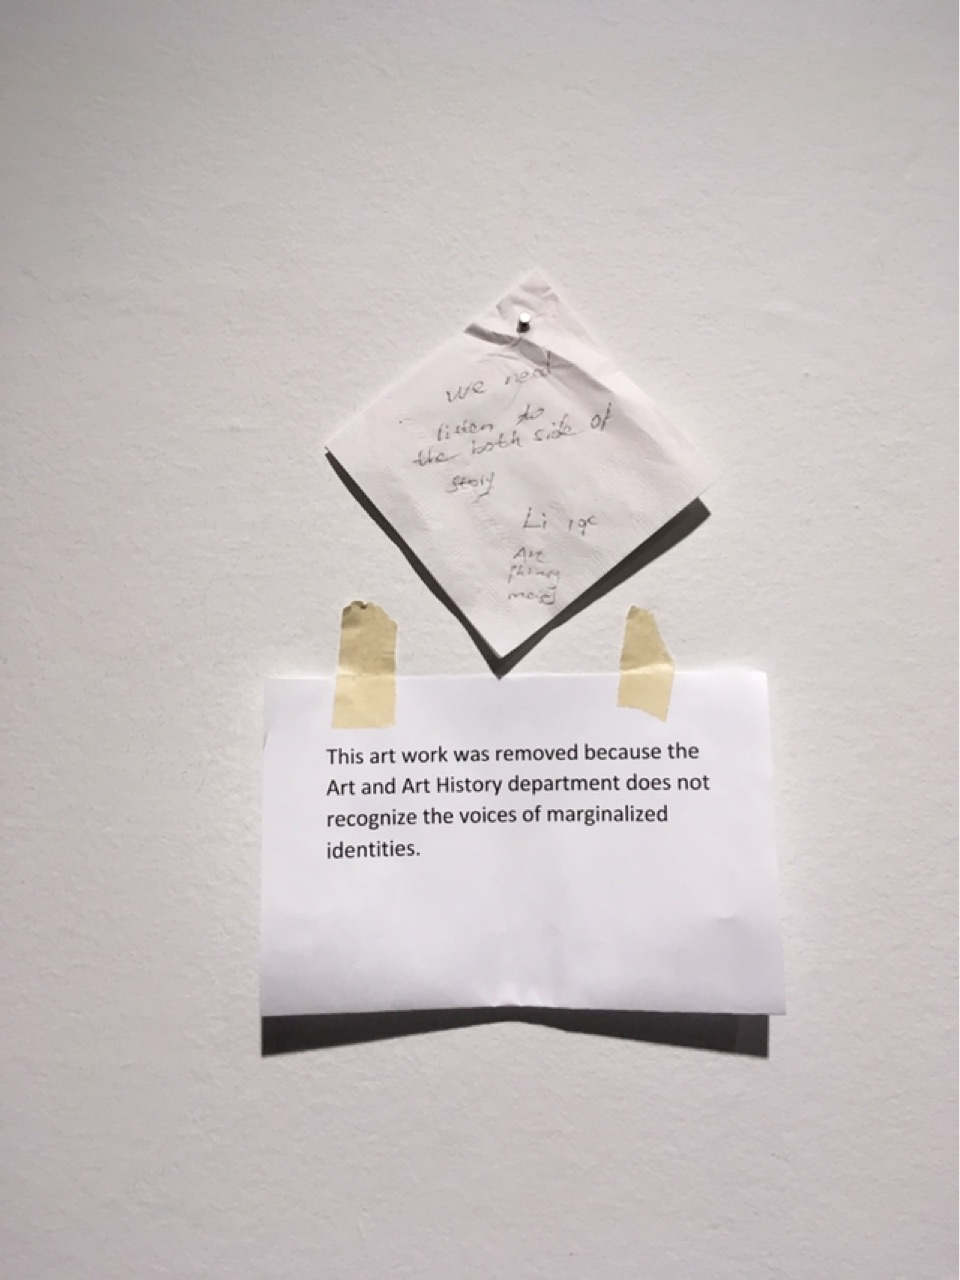 At the exhibit opening, an attendee posted a napkin encouraging dialogue above the note (Photo by Gettysburgian Staff)